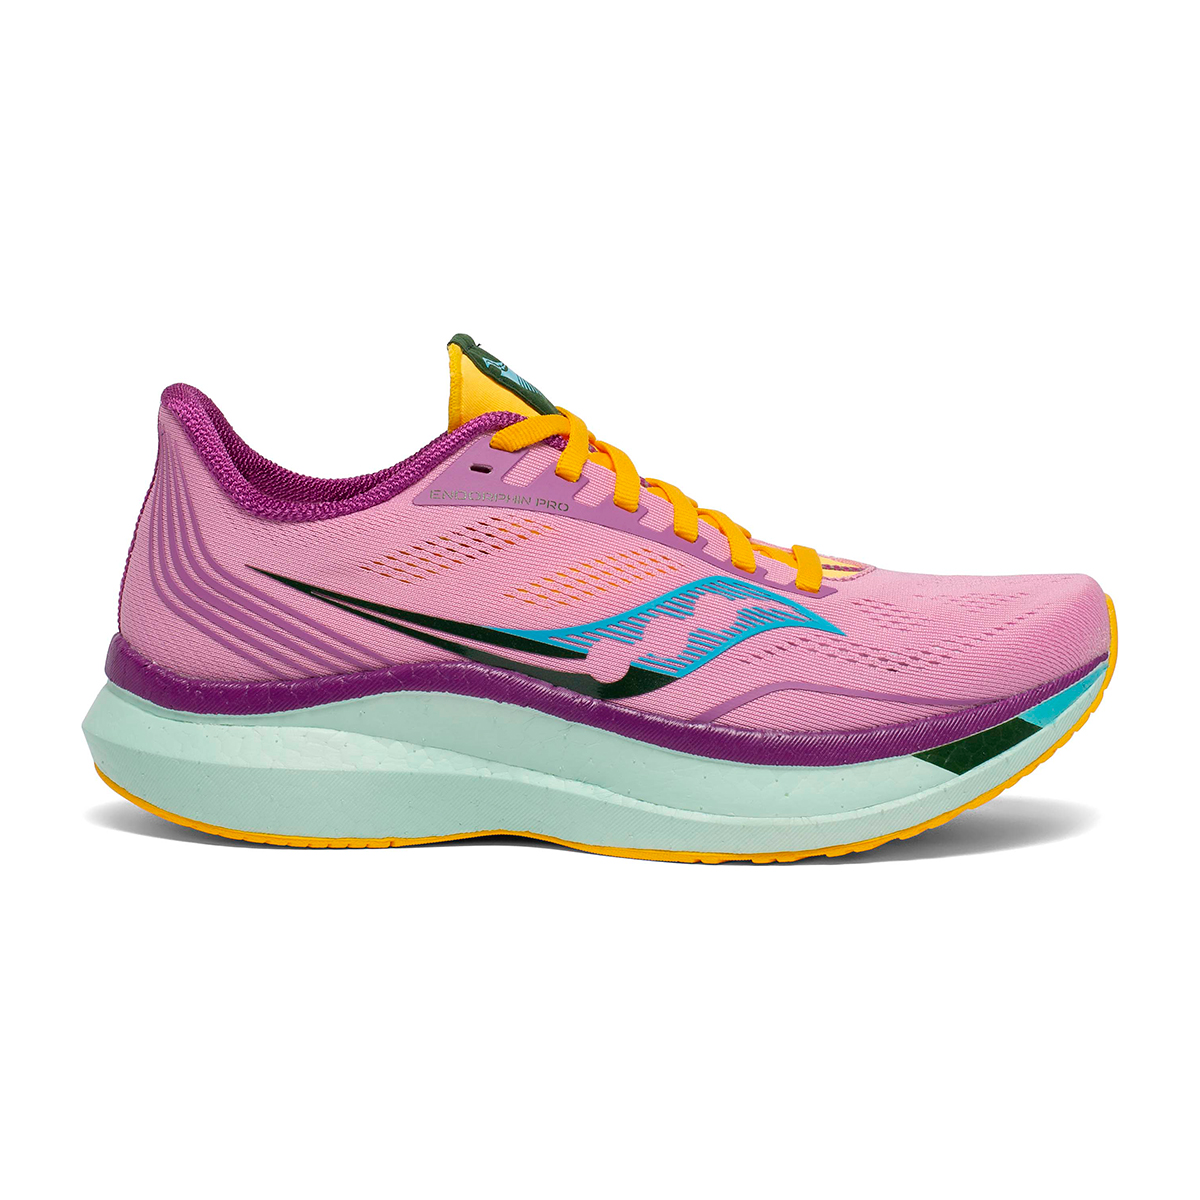 Women's Saucony Endorphin Pro Running Shoe - Color: Future/Pink - Size: 5 - Width: Regular, Future/Pink, large, image 1